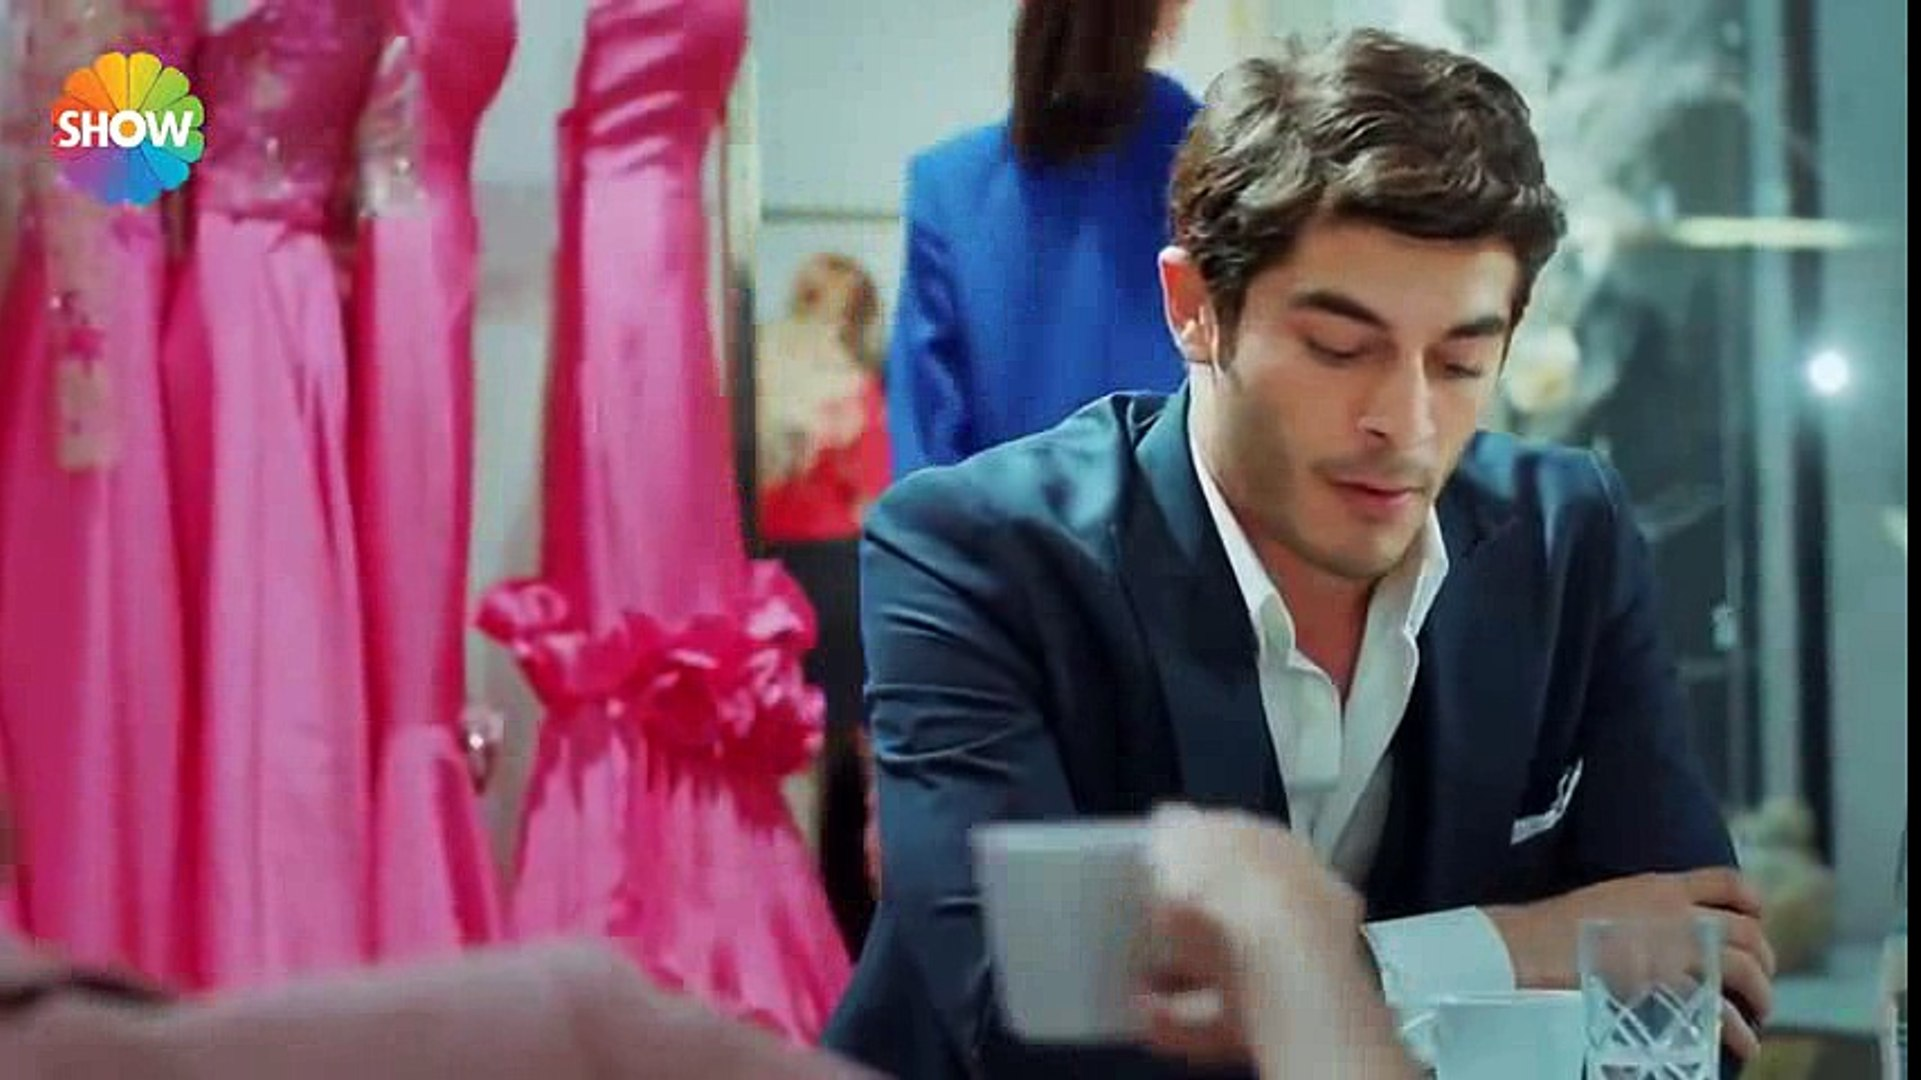 Ask Laftan Anlamaz (English) Episode 1 Part 4